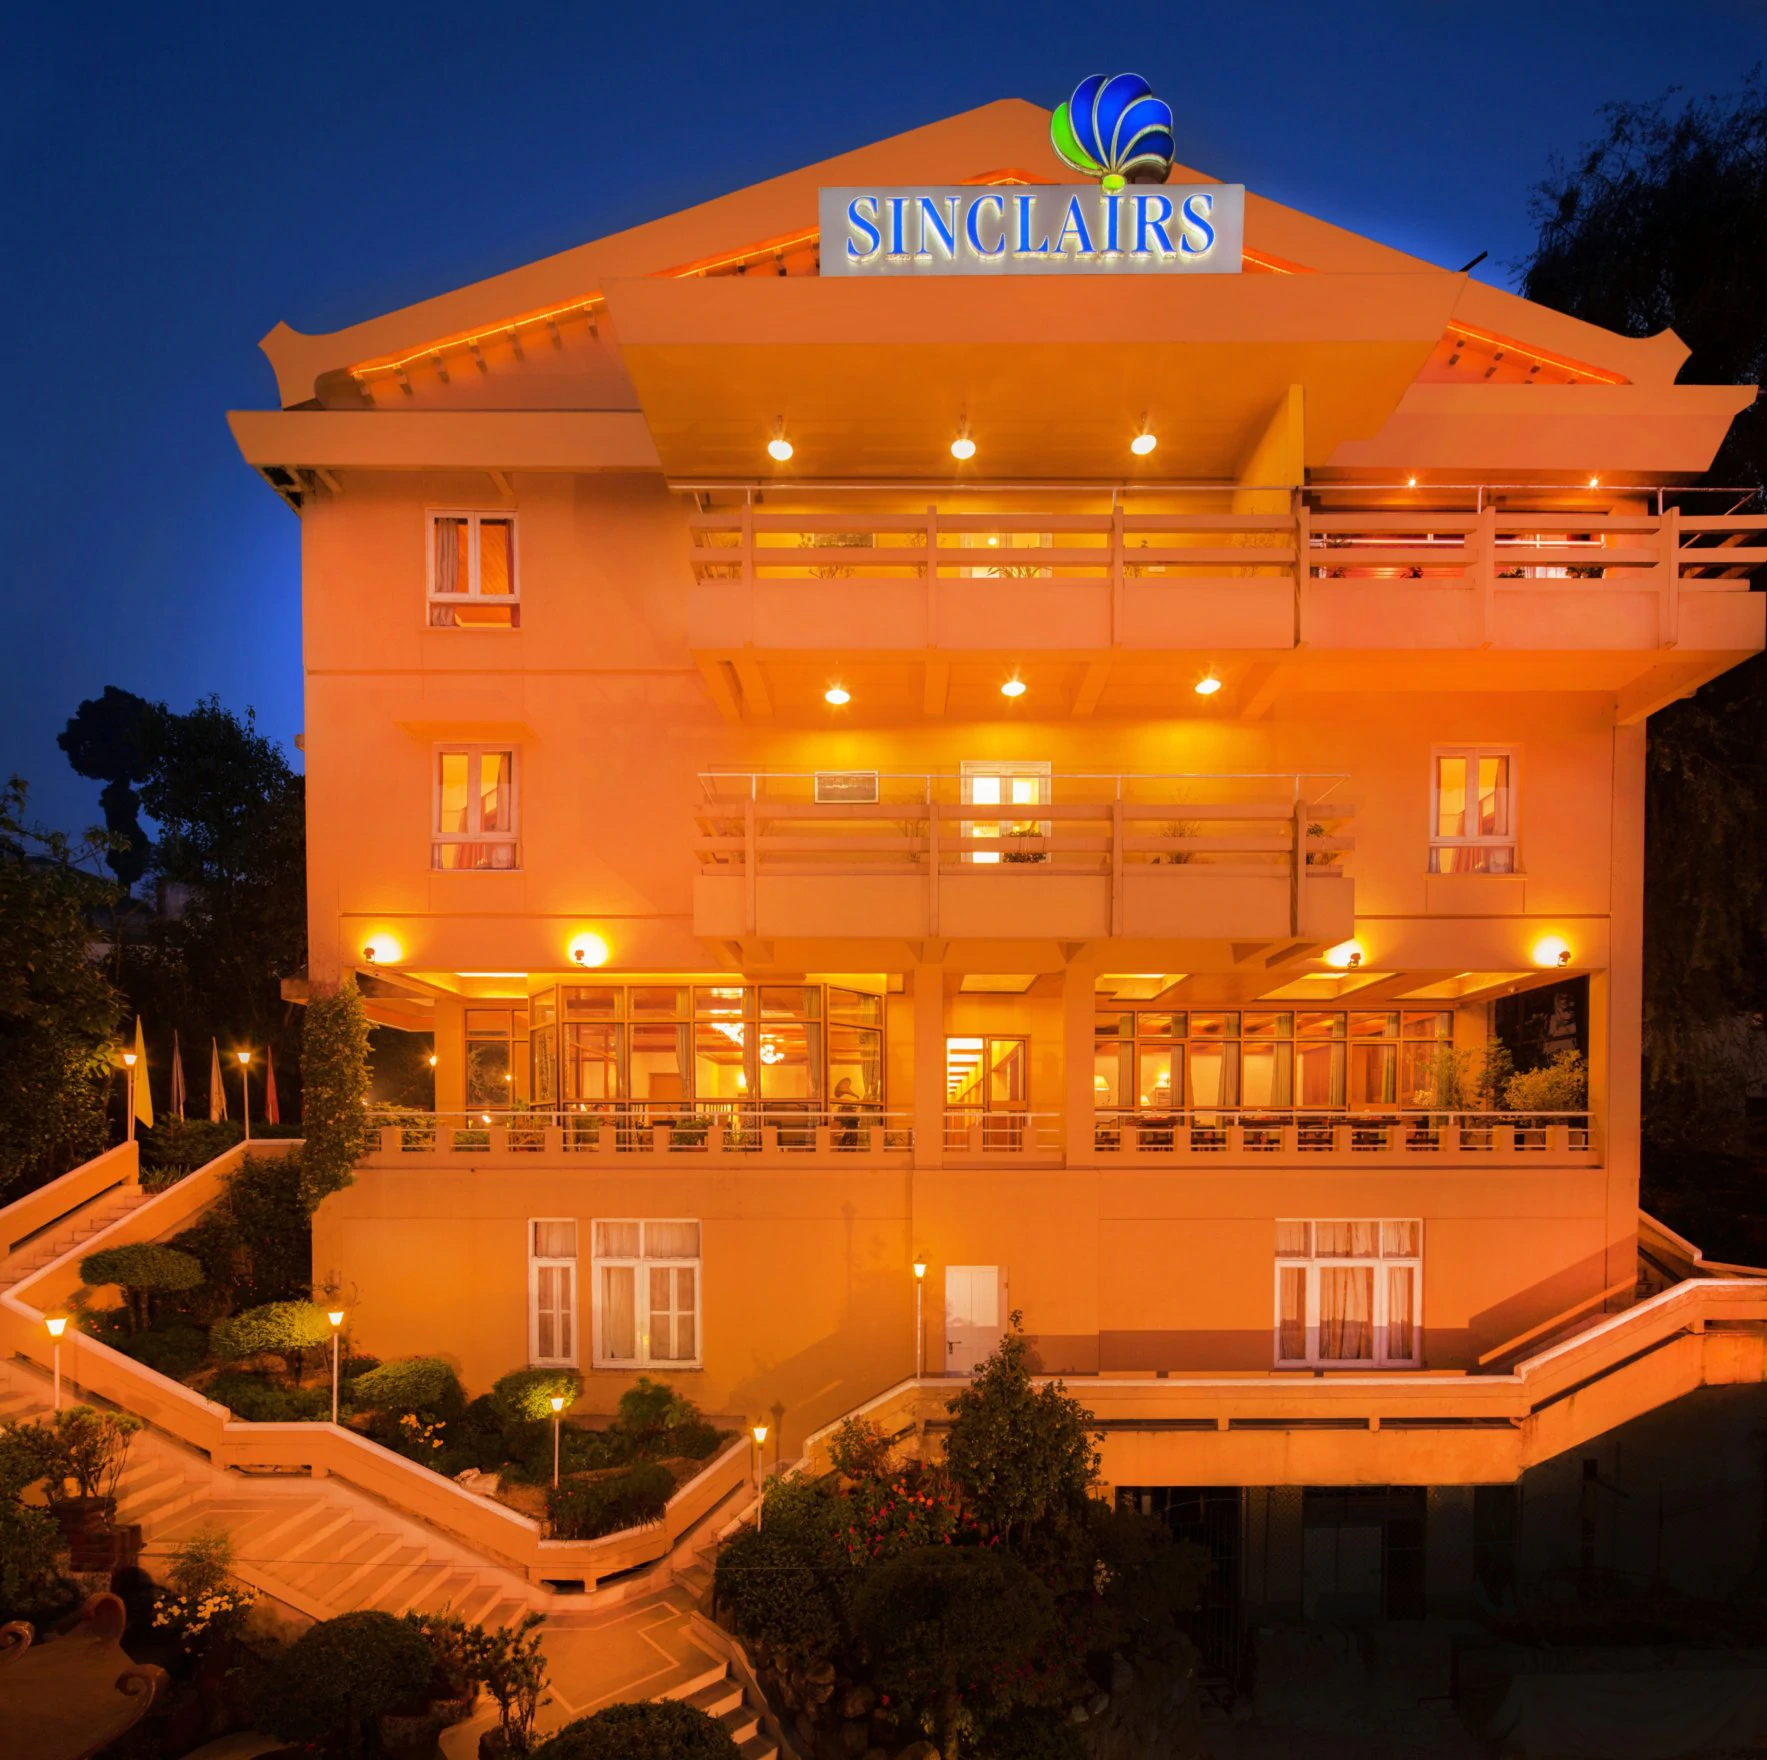 Sinclairs - Best Midrange Hotels to Stay in Darjeeling